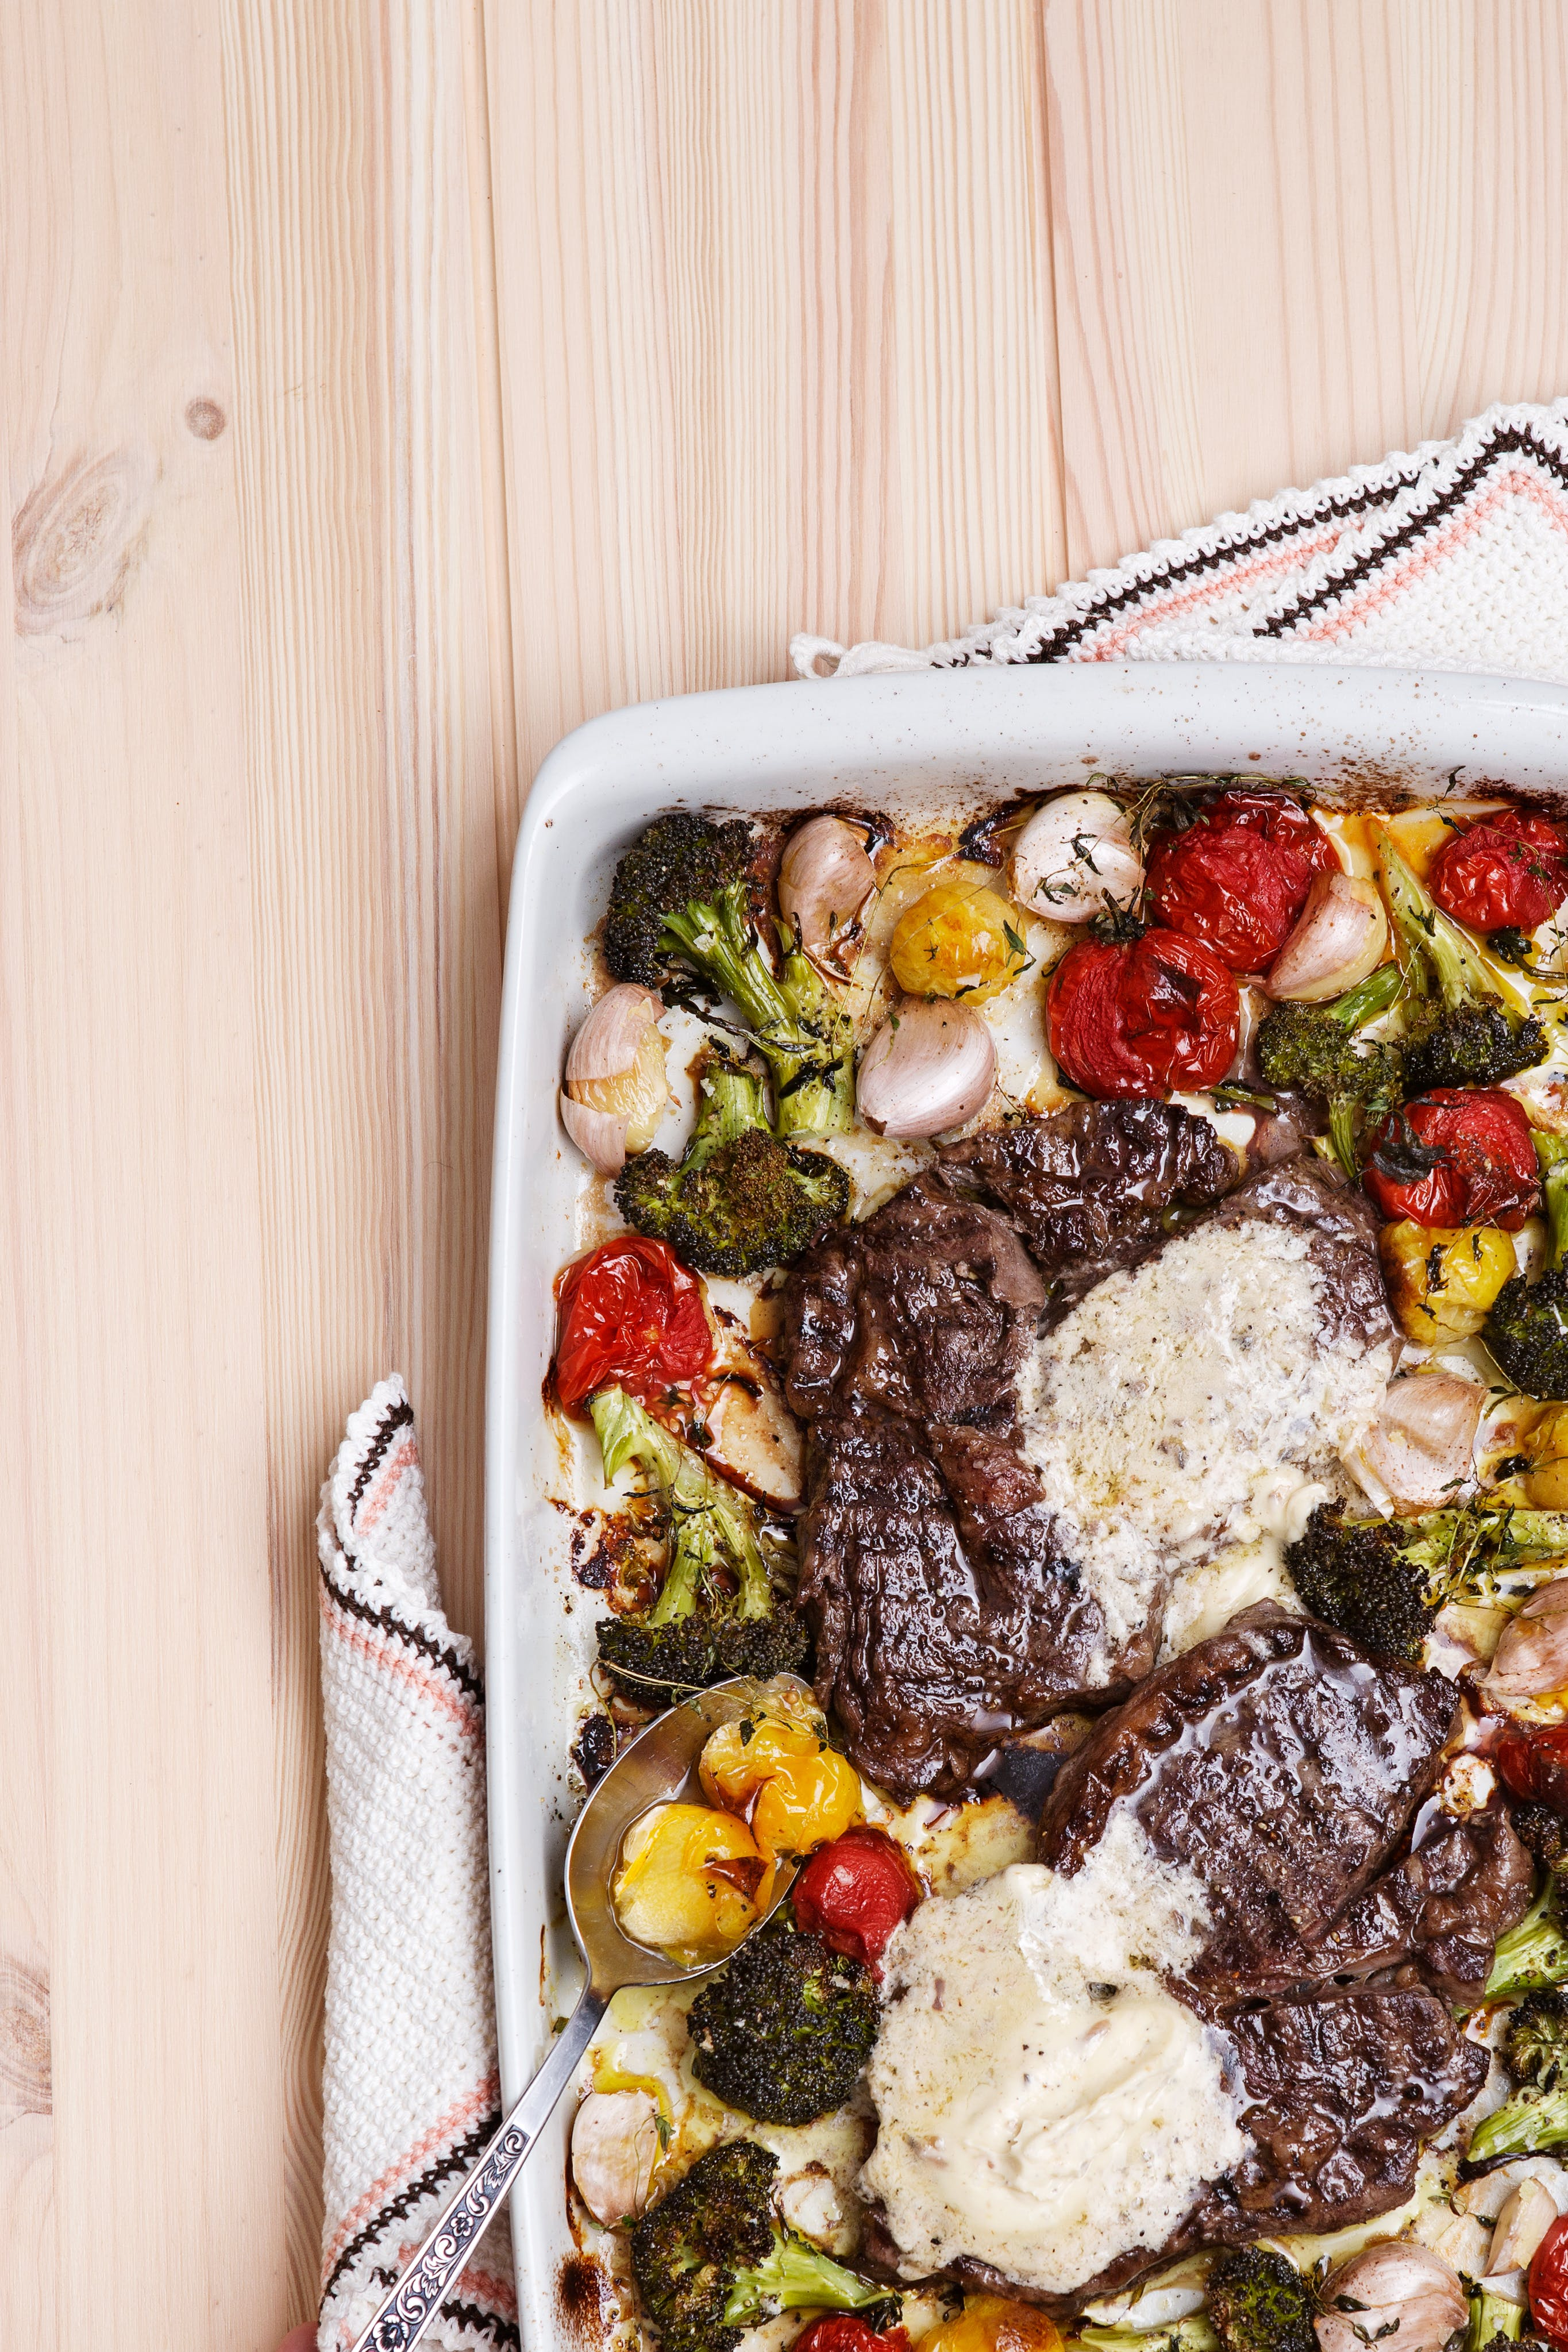 Keto ribeye steak with oven-roasted vegetables